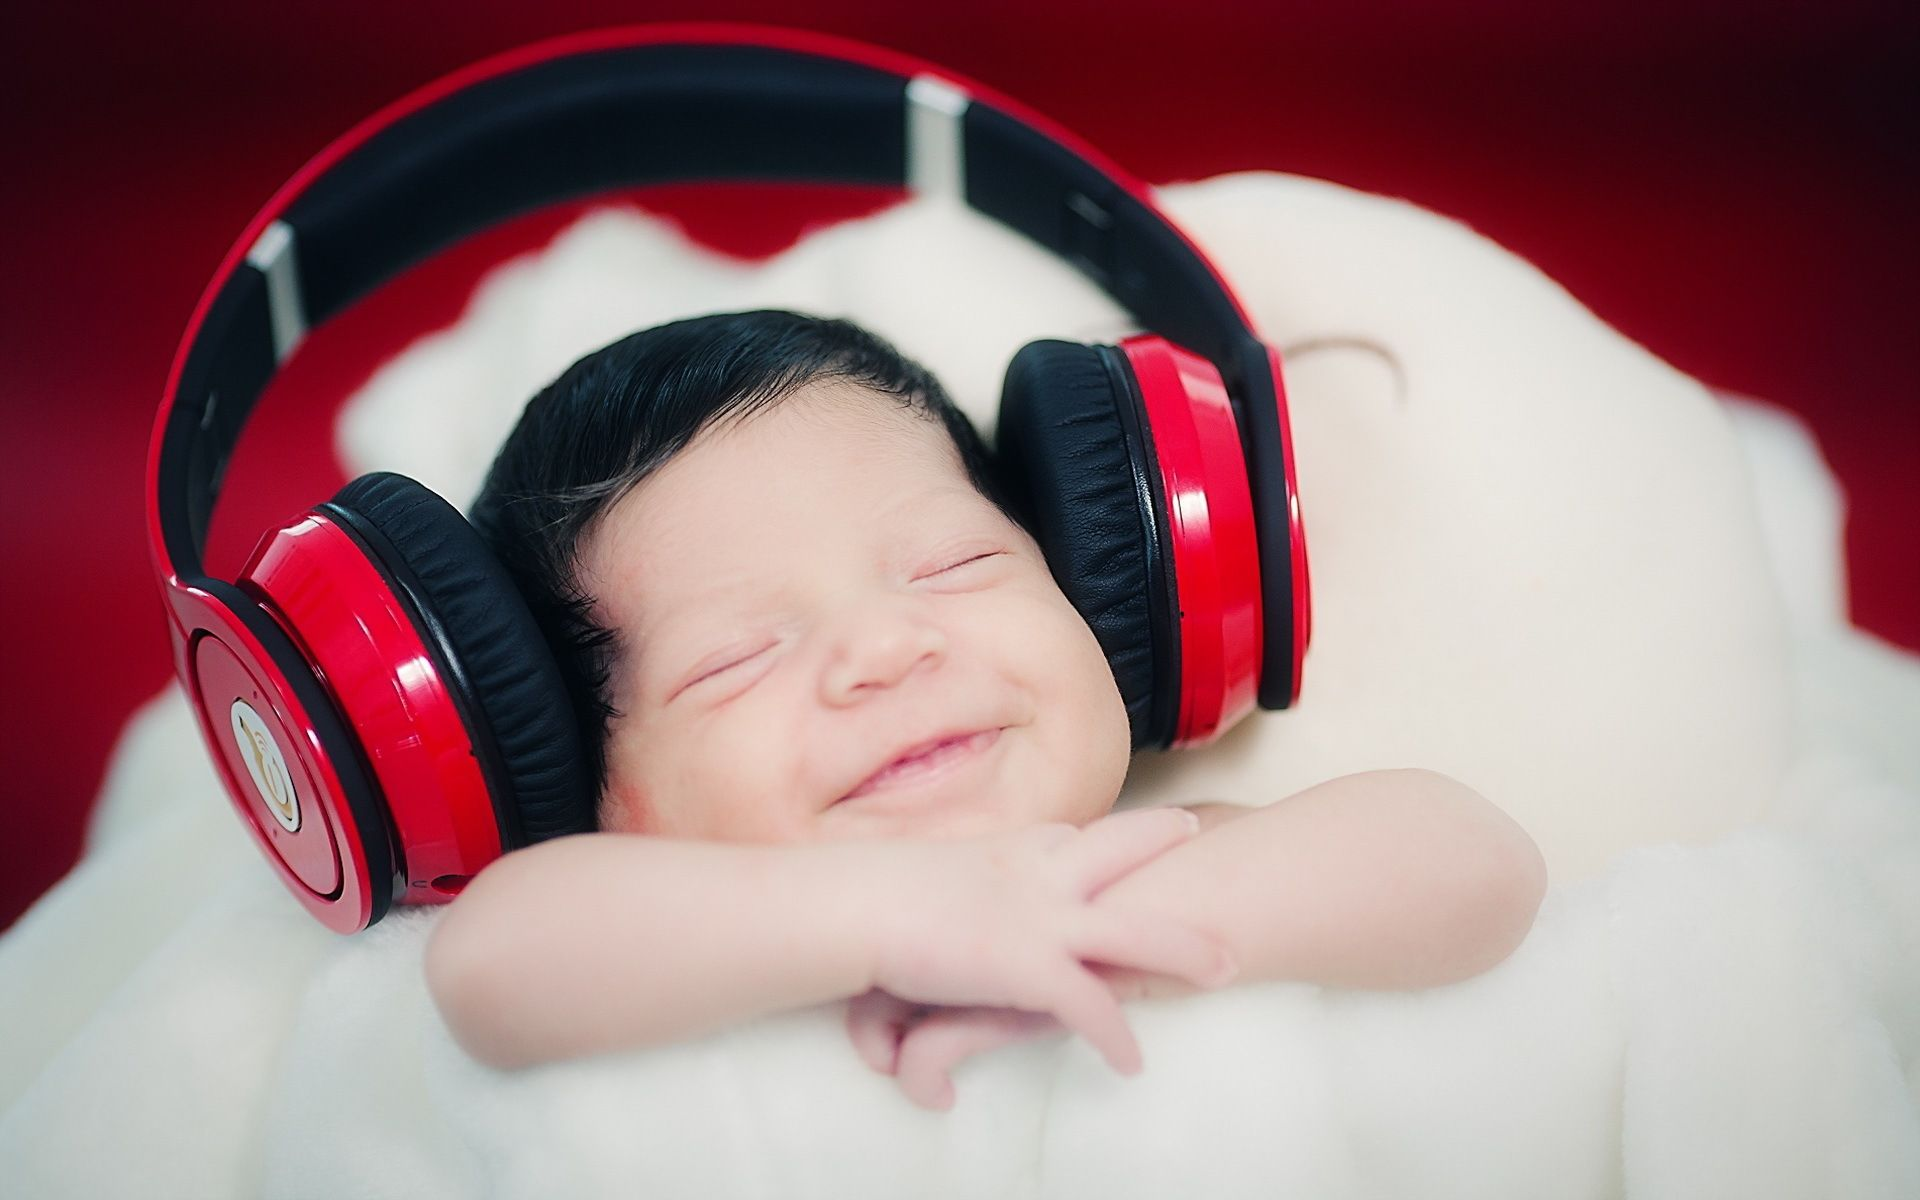 Baby Sleep With Headphones Wallpaper Cute Baby